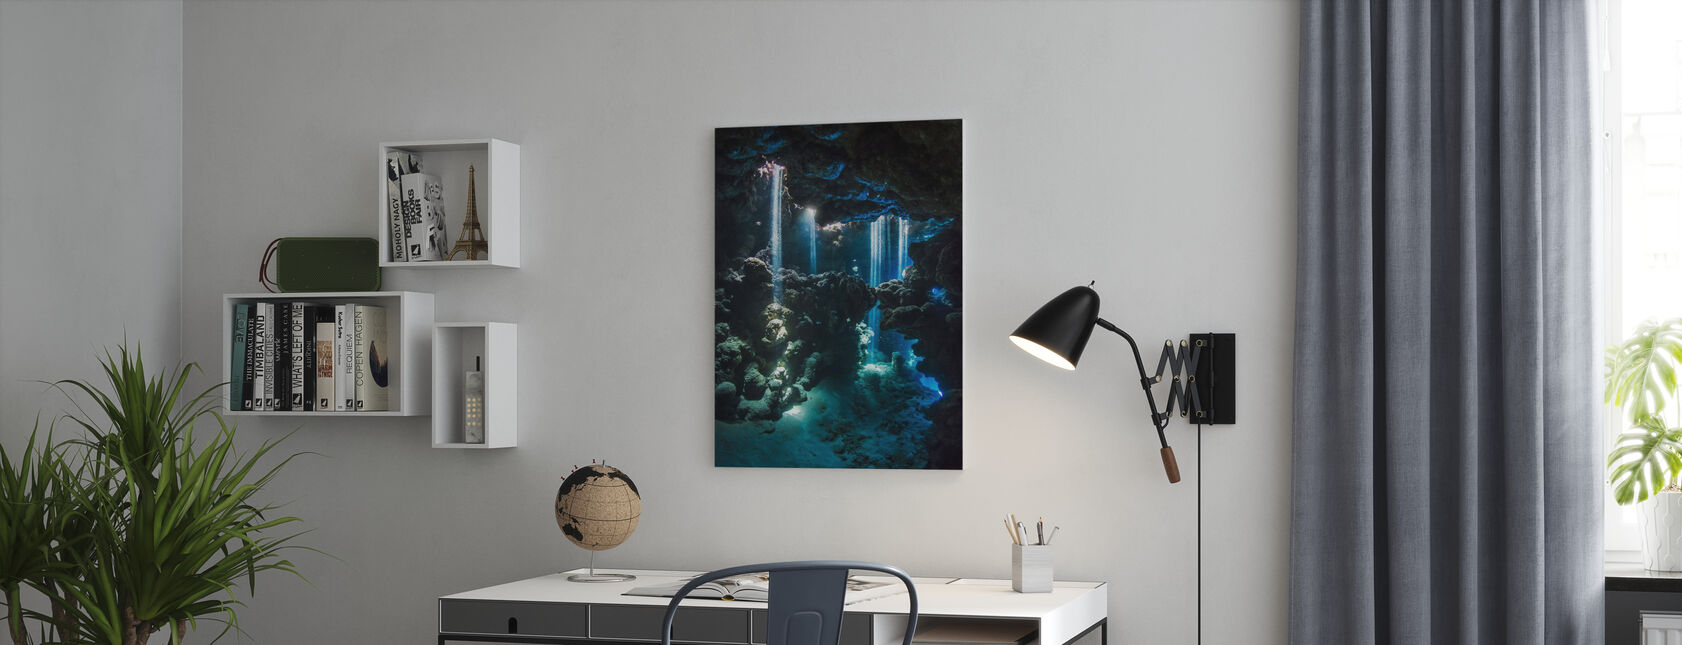 Shafts of Light - Canvas print - Office